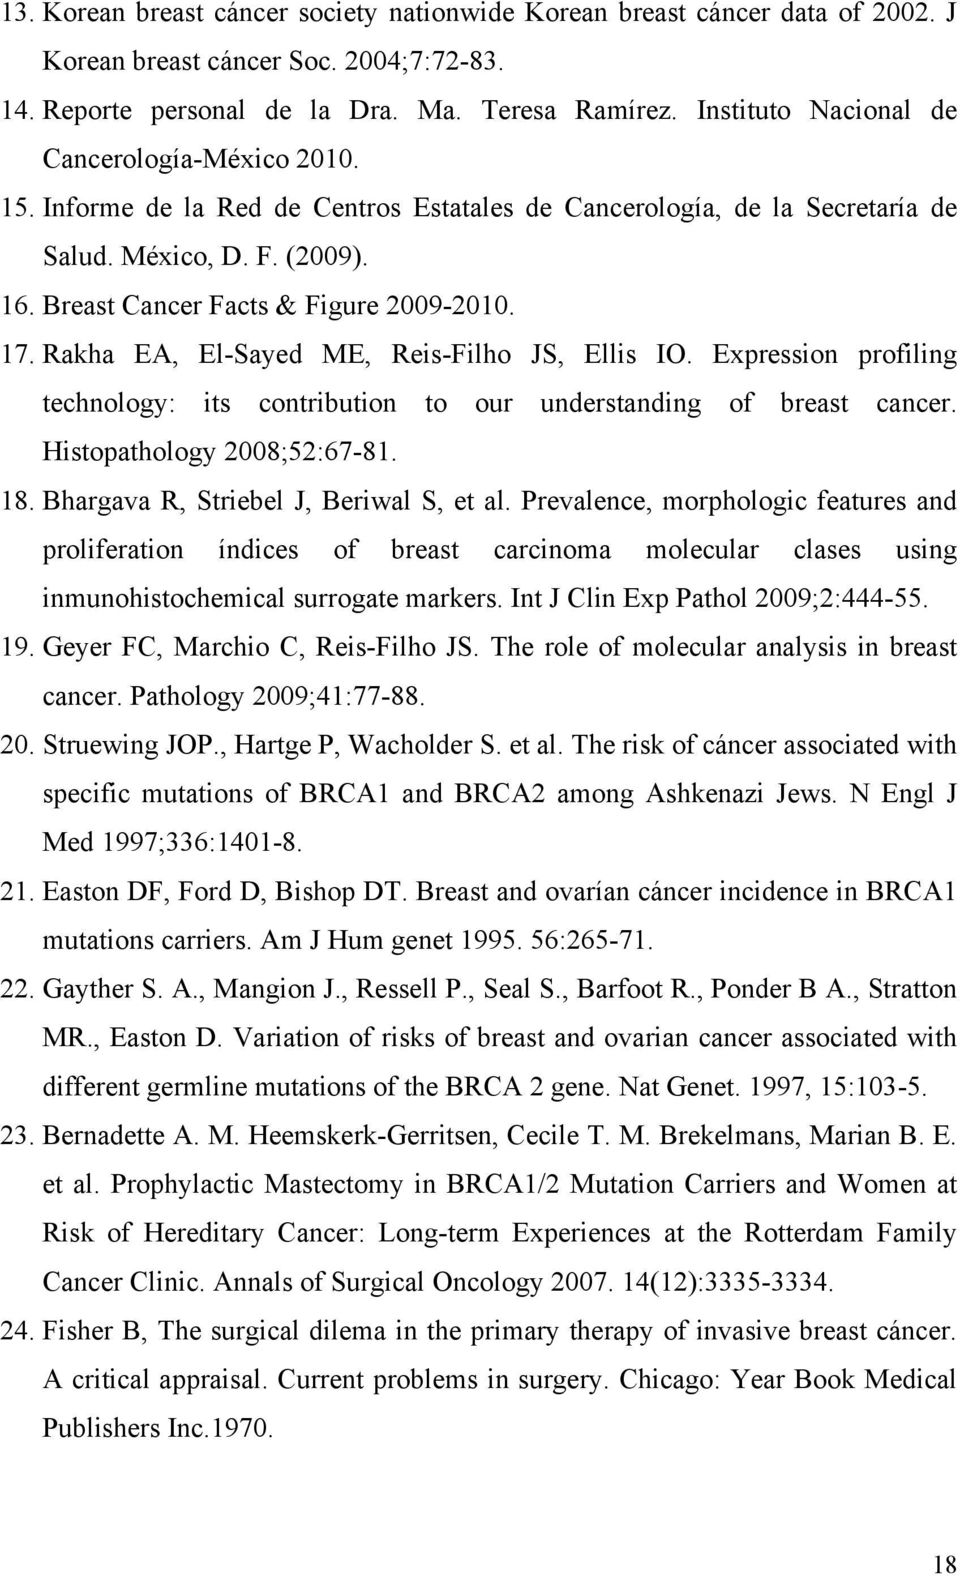 17. Rakha EA, El-Sayed ME, Reis-Filho JS, Ellis IO. Expression profiling technology: its contribution to our understanding of breast cancer. Histopathology 2008;52:67-81. 18.